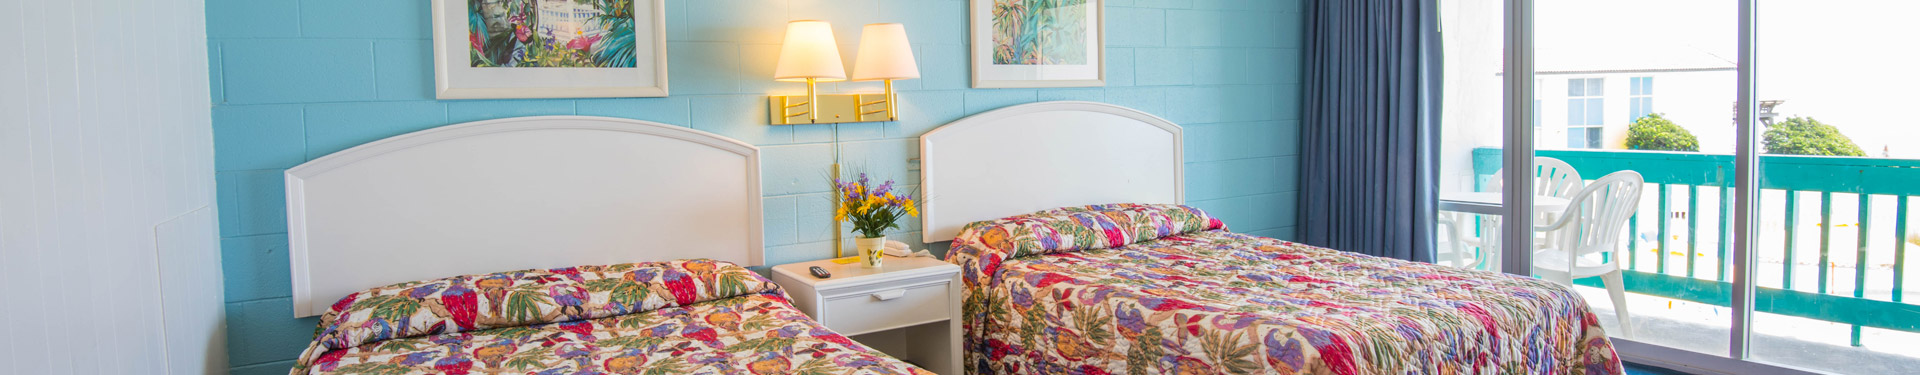 Rooms Rates Seahawk Inn Villas Atlantic Beach Nc Lodging Hotel Motel Accommodations Place To Stay Pet Friendly Oceanfront Suite